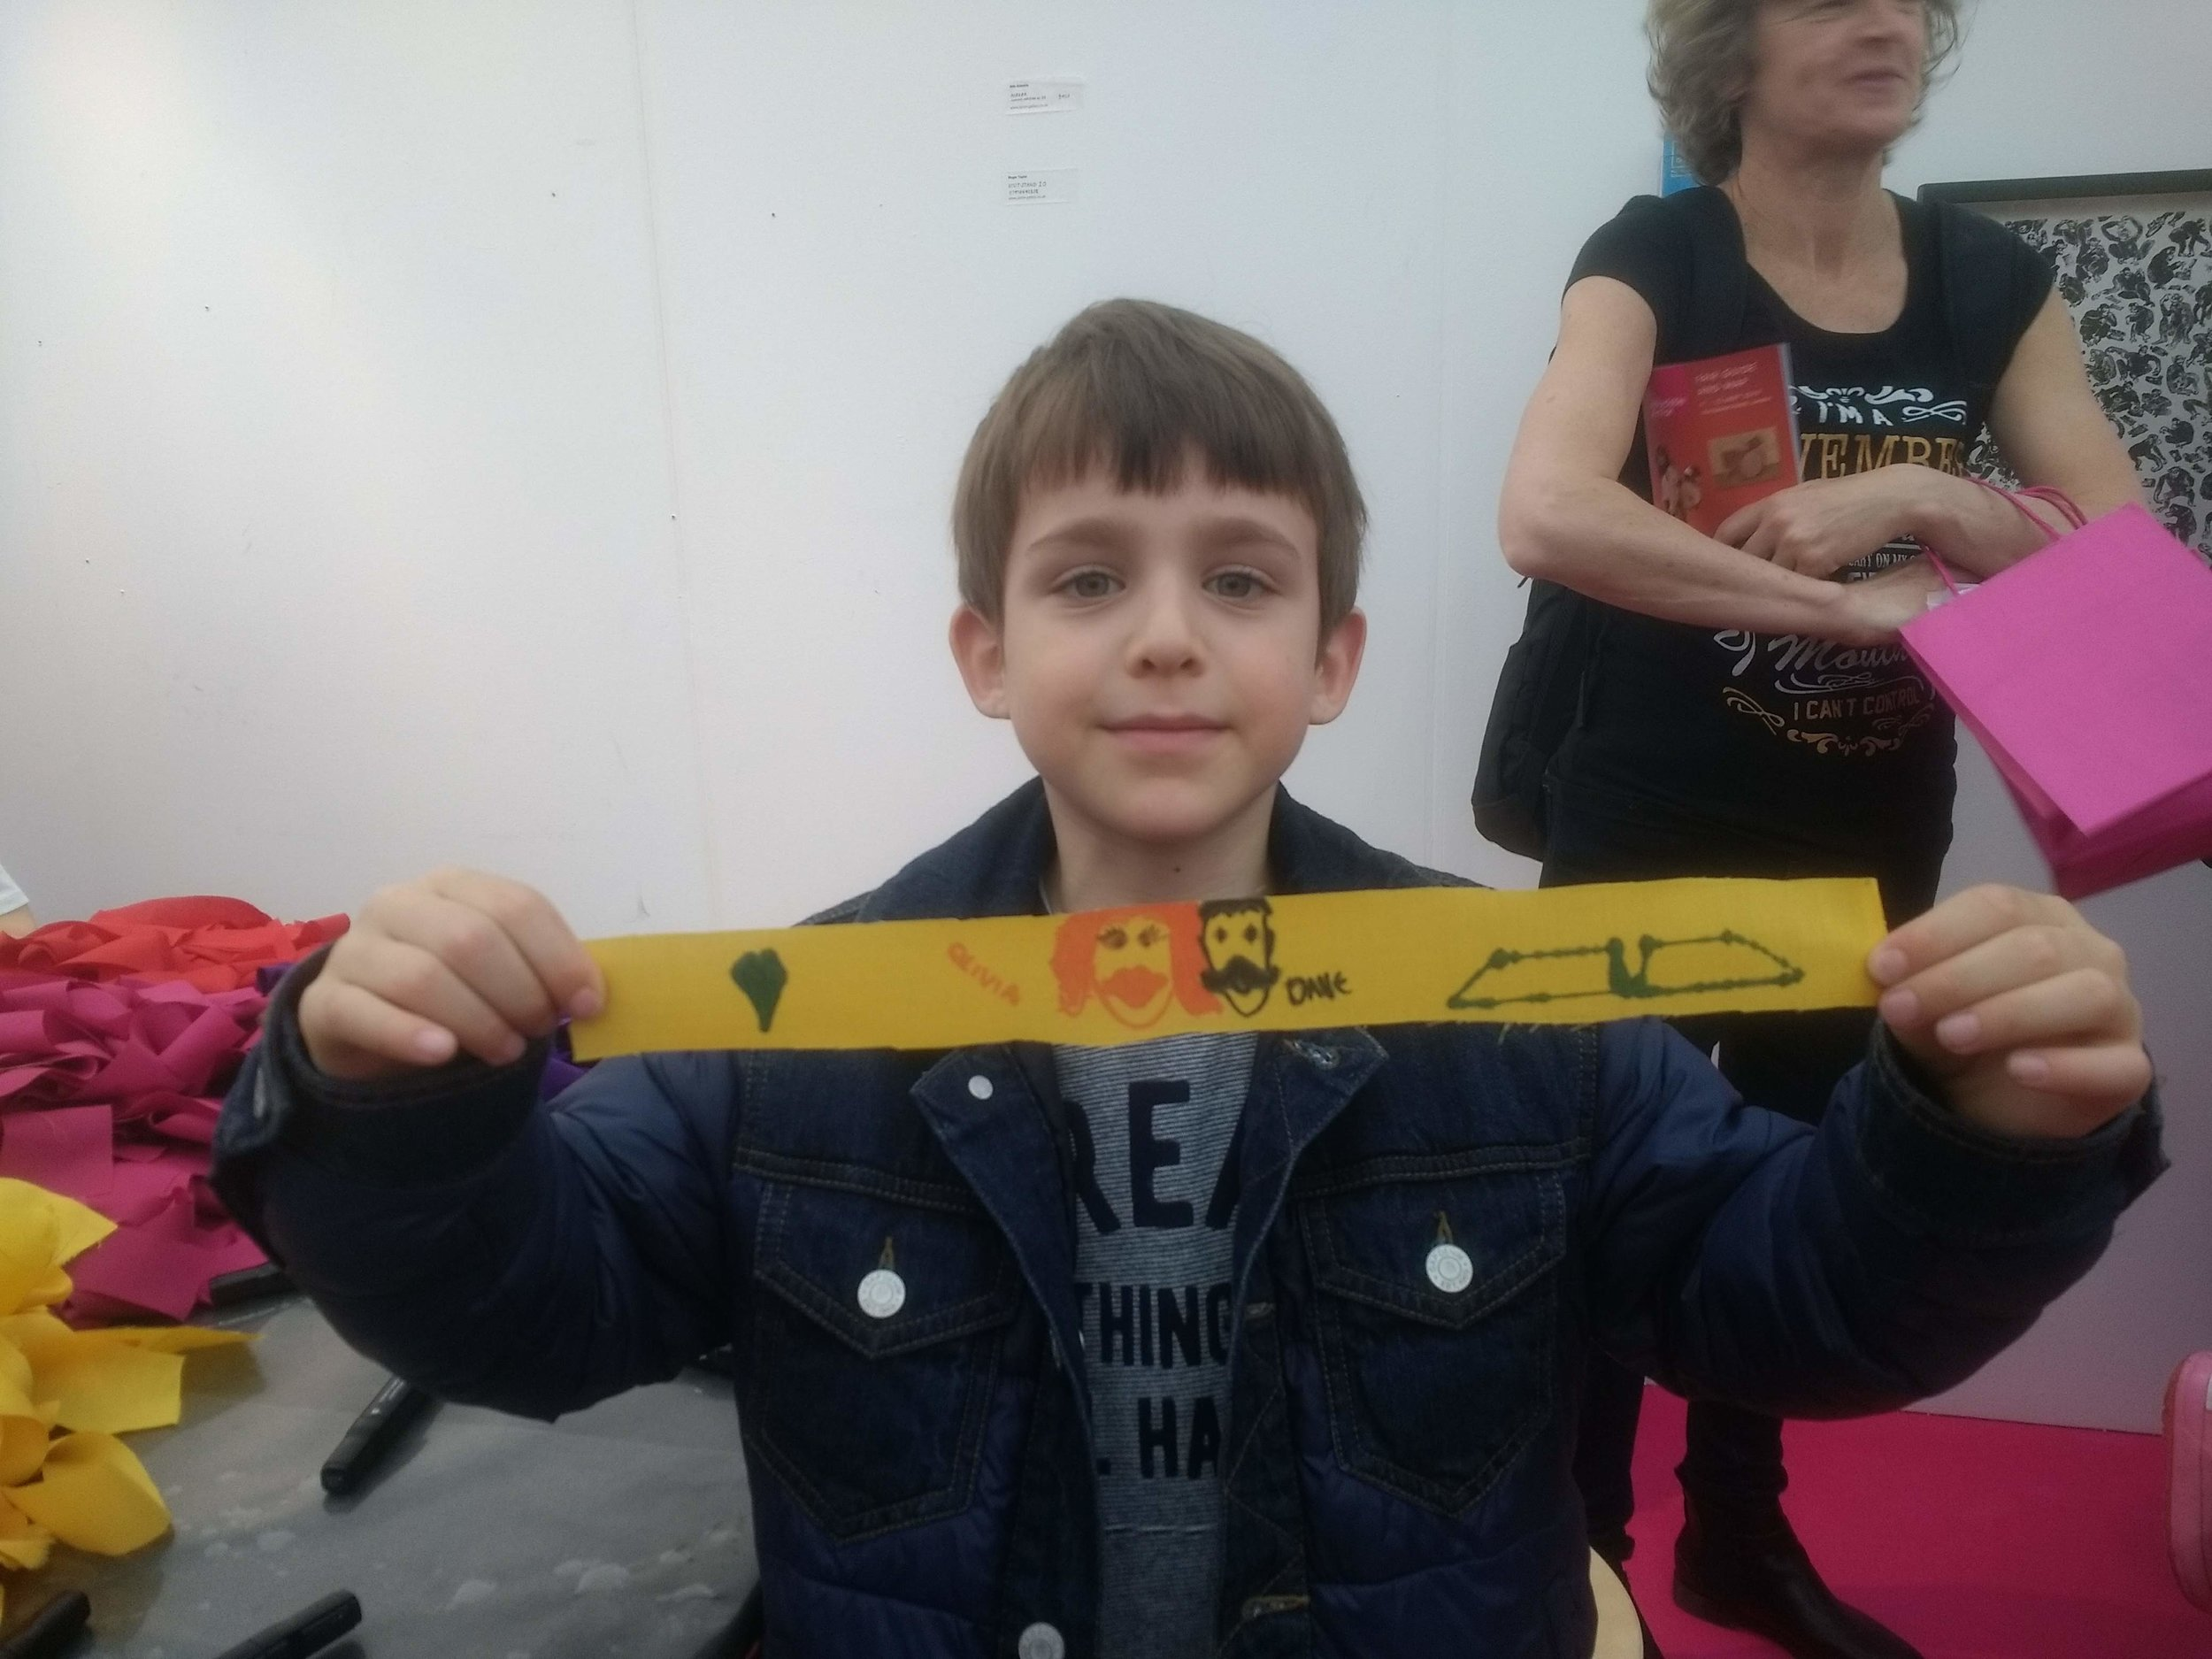 A little boy holding up a yellow strip with drawings of faces on it